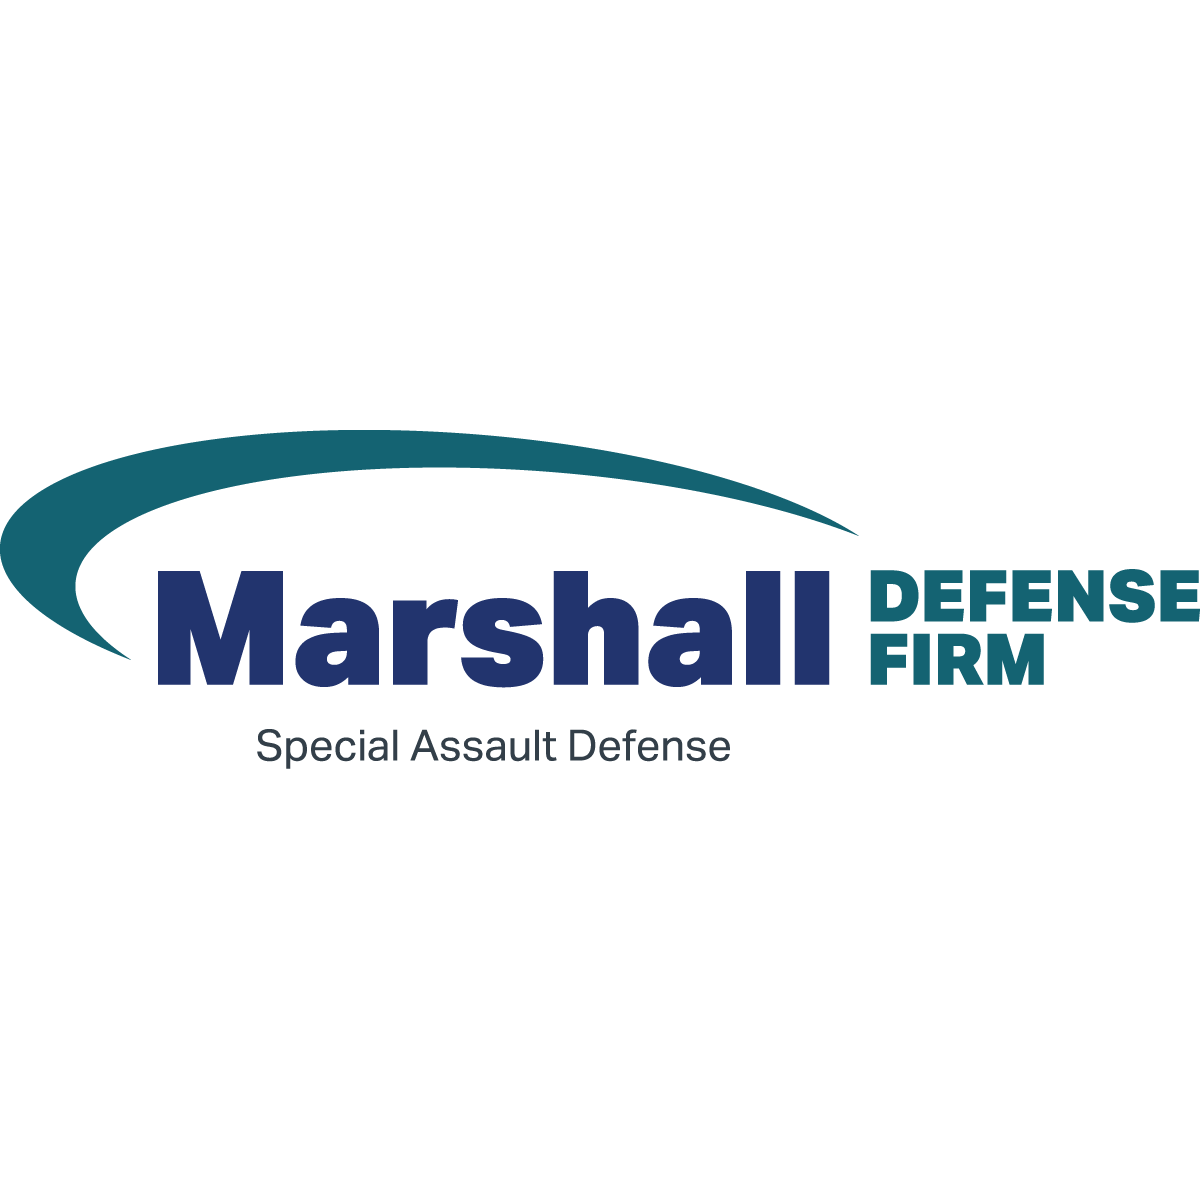 The Marshall Defense Firm